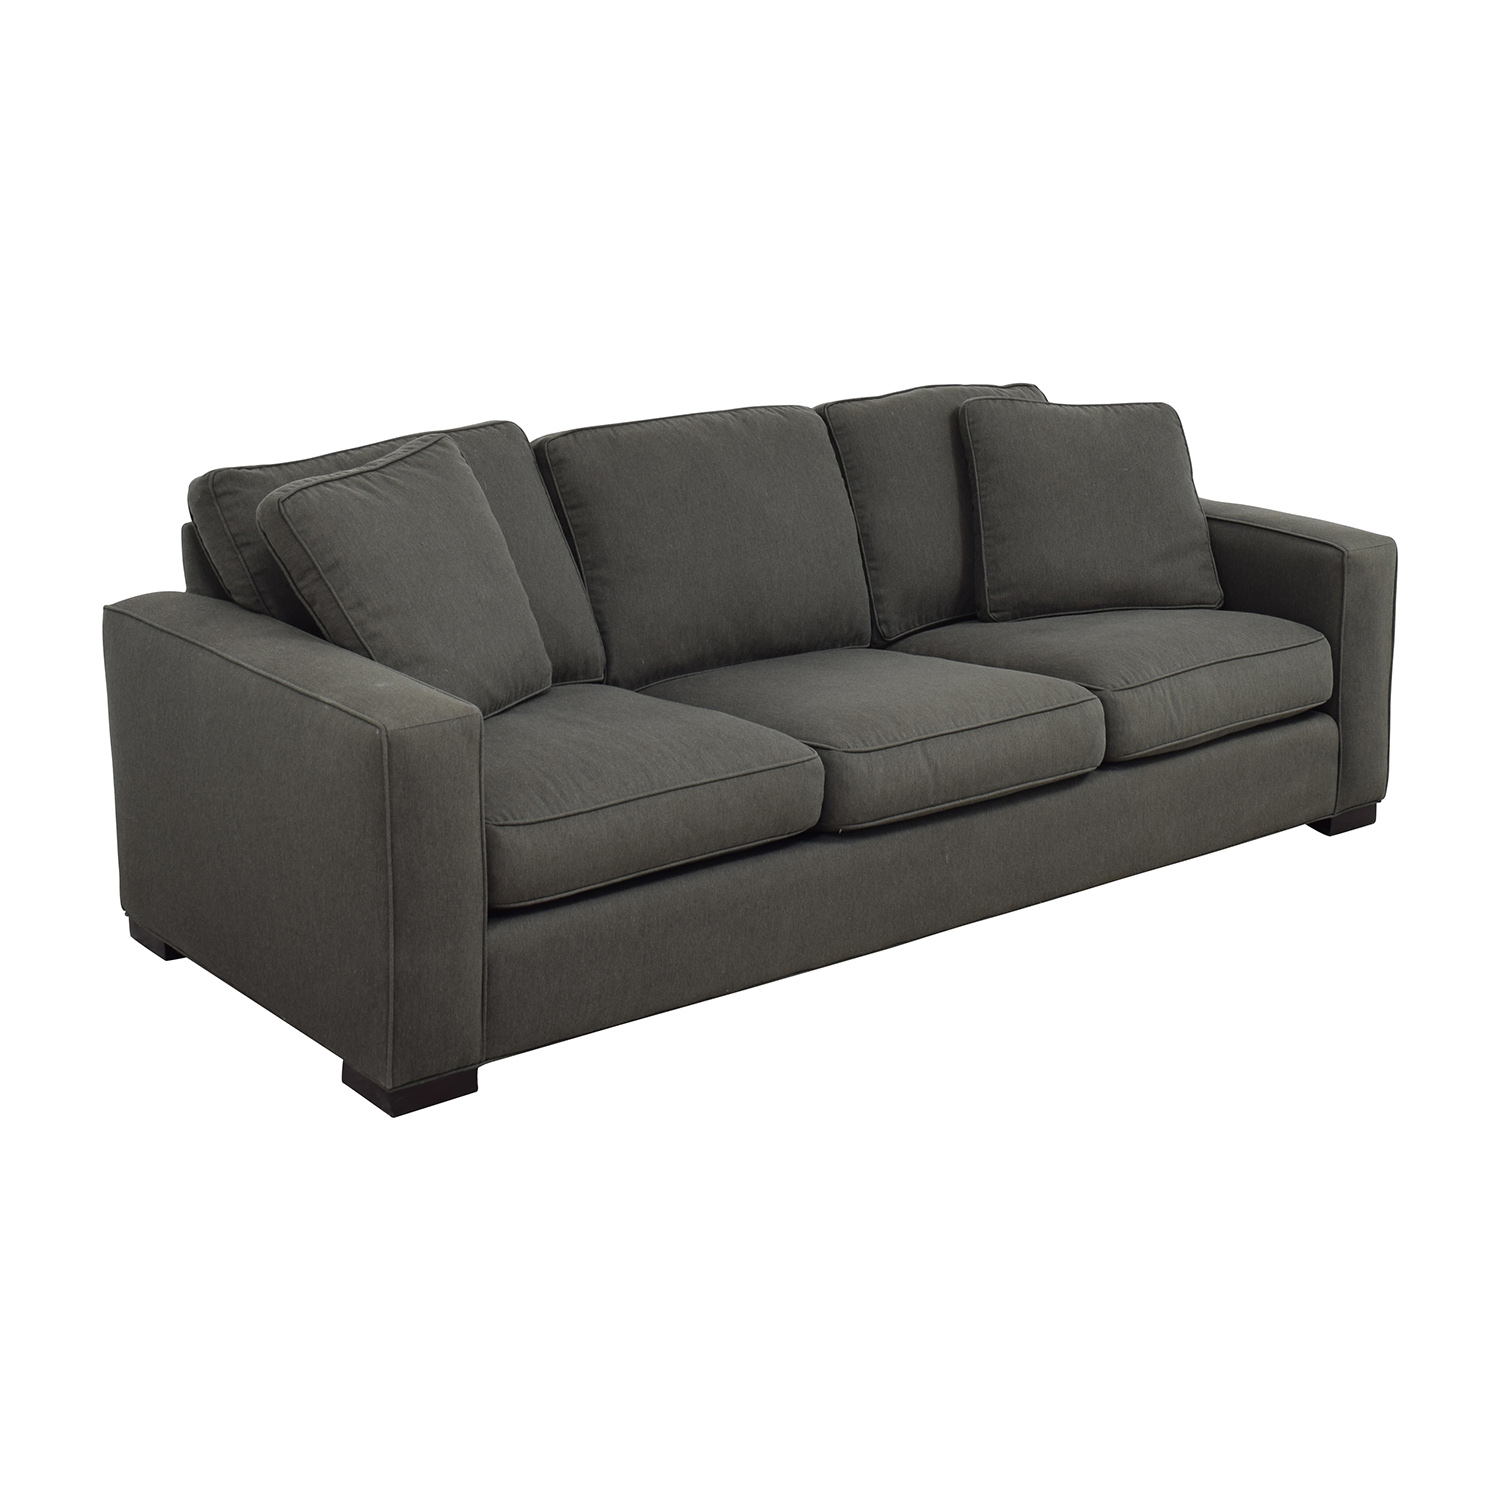 room and board metro sleeper sofa baby blue leather 49 off in charcoal